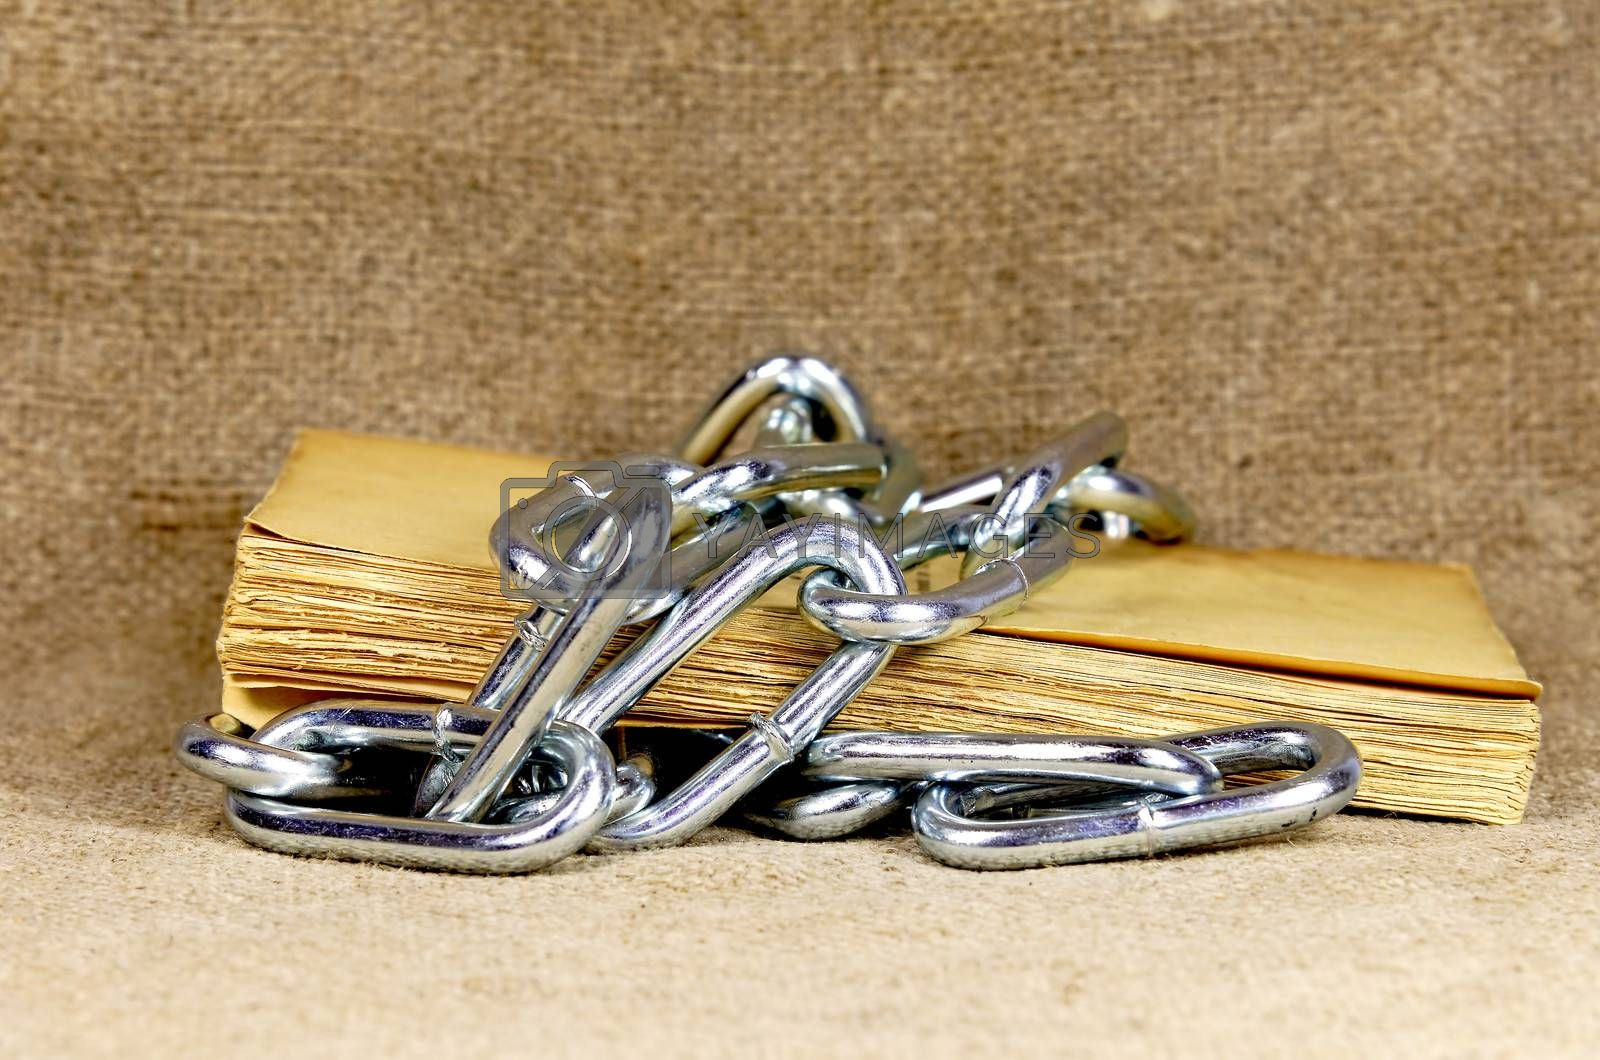 old book surrounded with chain